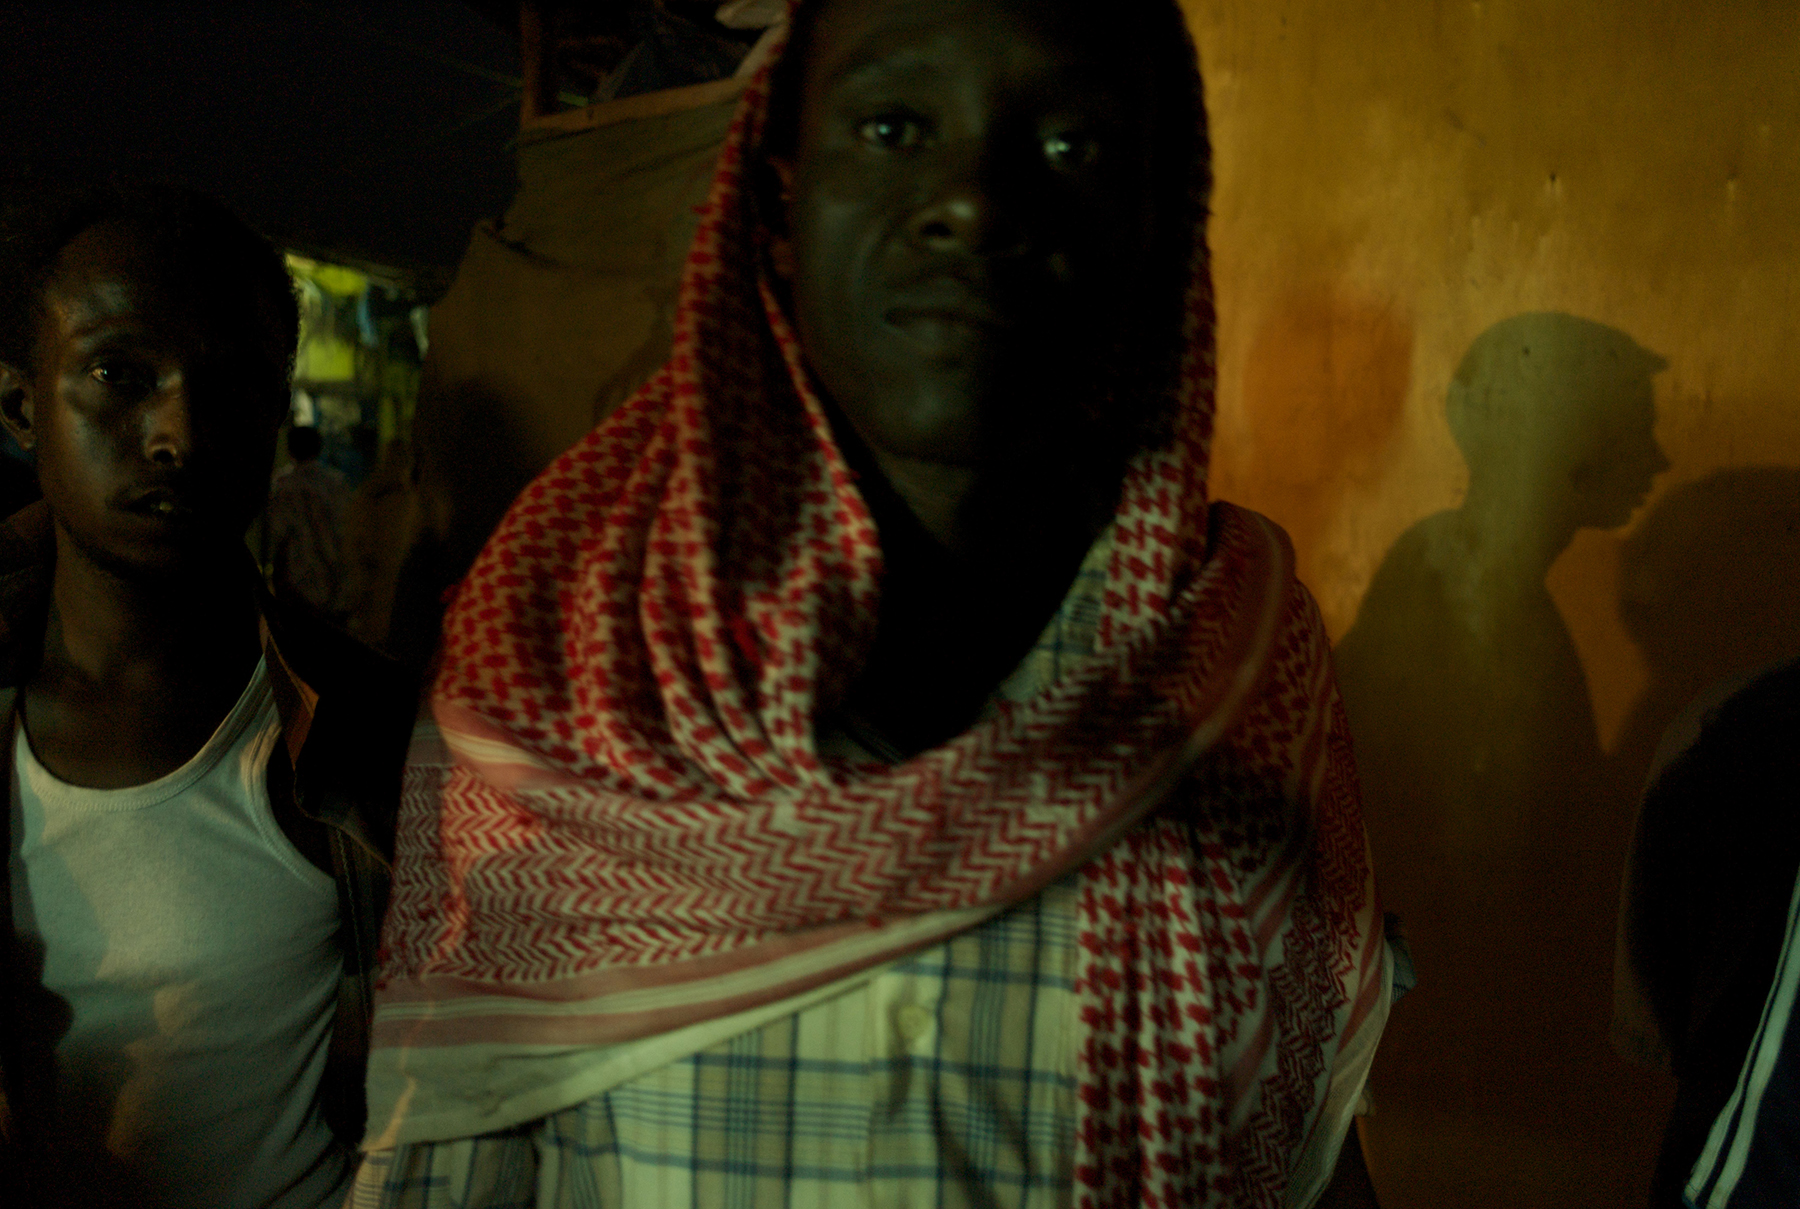 Basatine, Yemen, March, 2008. Back in the slums of Basatine, Mohamed returns late in the evening after a fruitless day spent walking Aden's streets in search of work. Having arrived in Yemen from Bossaso two months ago, Mohamed is just one of just eleven men to have survived a perilous journey across the Gulf of Aden. He is still traumatized, having witnessed one hundred of the other passengers on board the tiny boat drown as they capsized at sea.